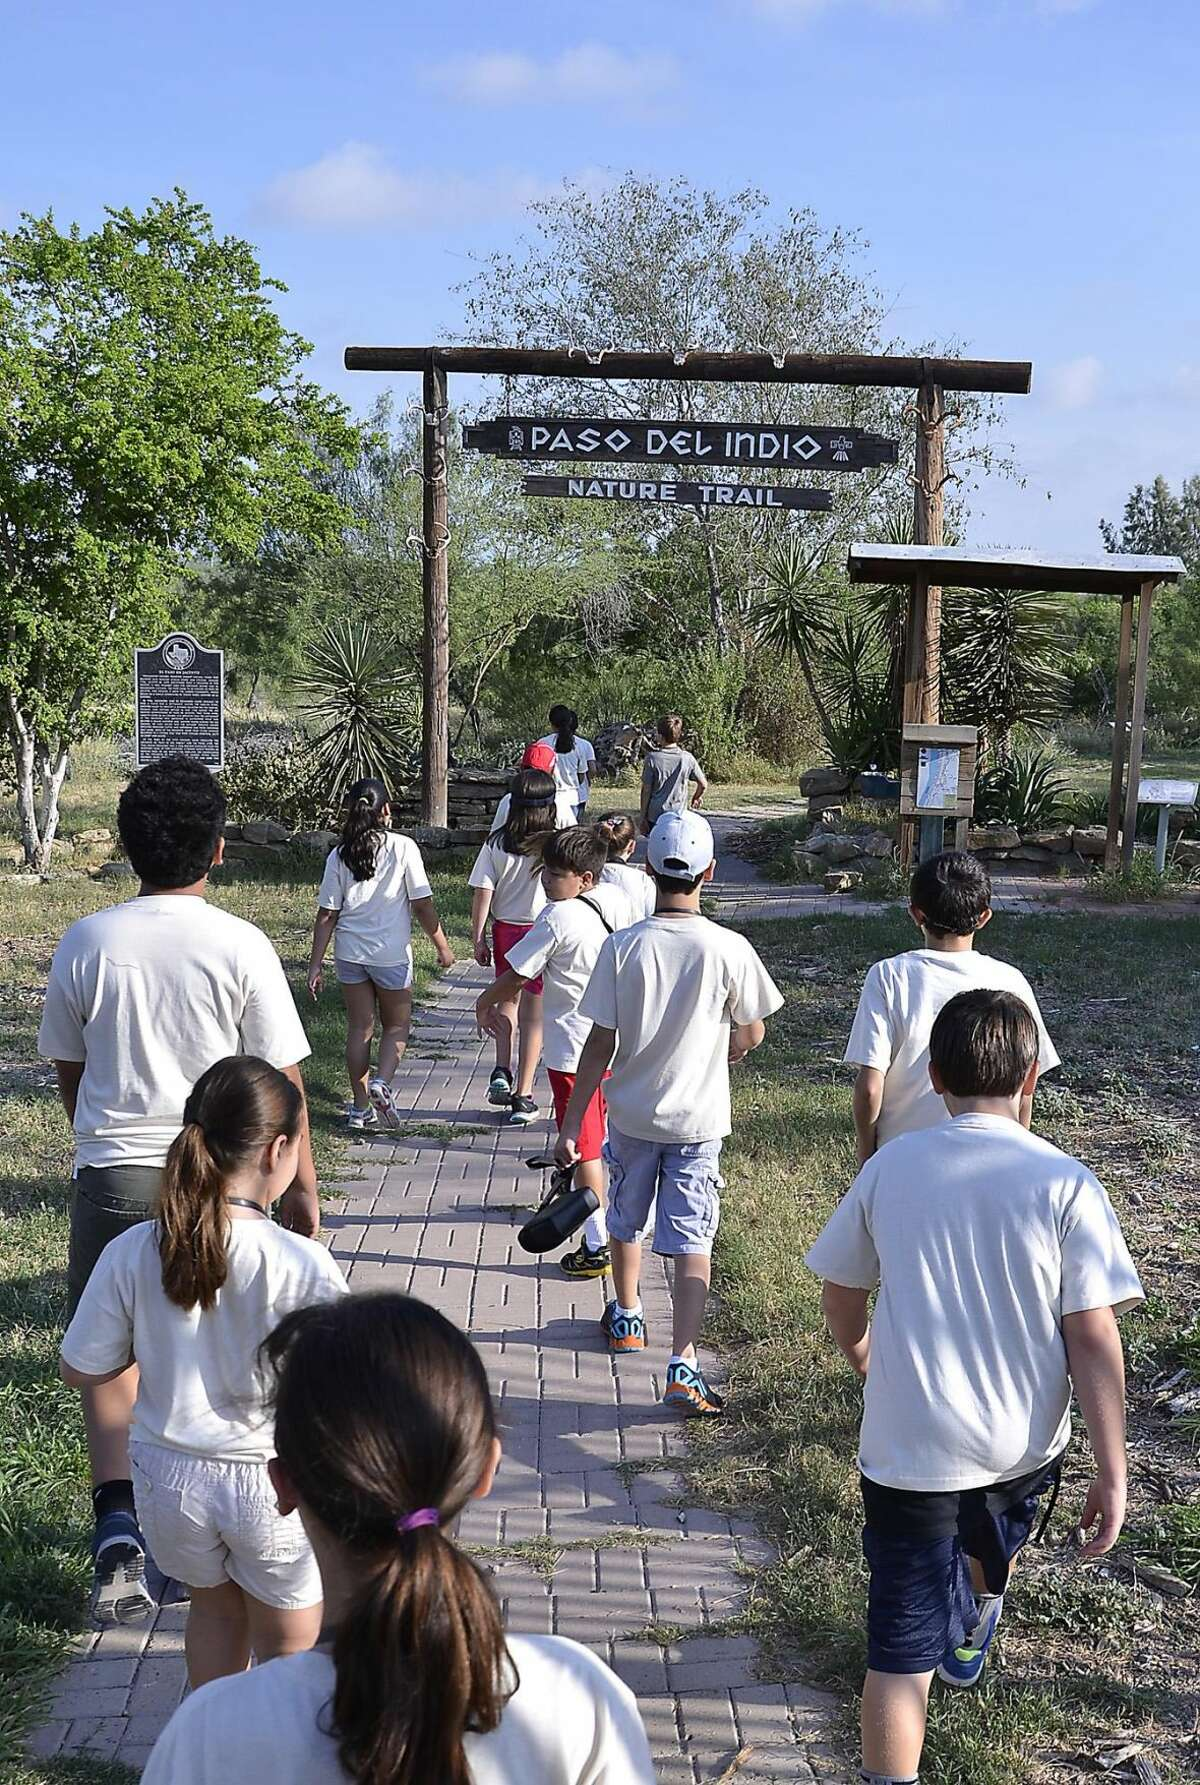 Lamar Bruni Vergara Envionmental Center's Environmental Science Camp participants make their way to the banks of the Rio Grande at the Paso del Indio Nature Trail Tuesday morning. (Photo by: Cuate Santos